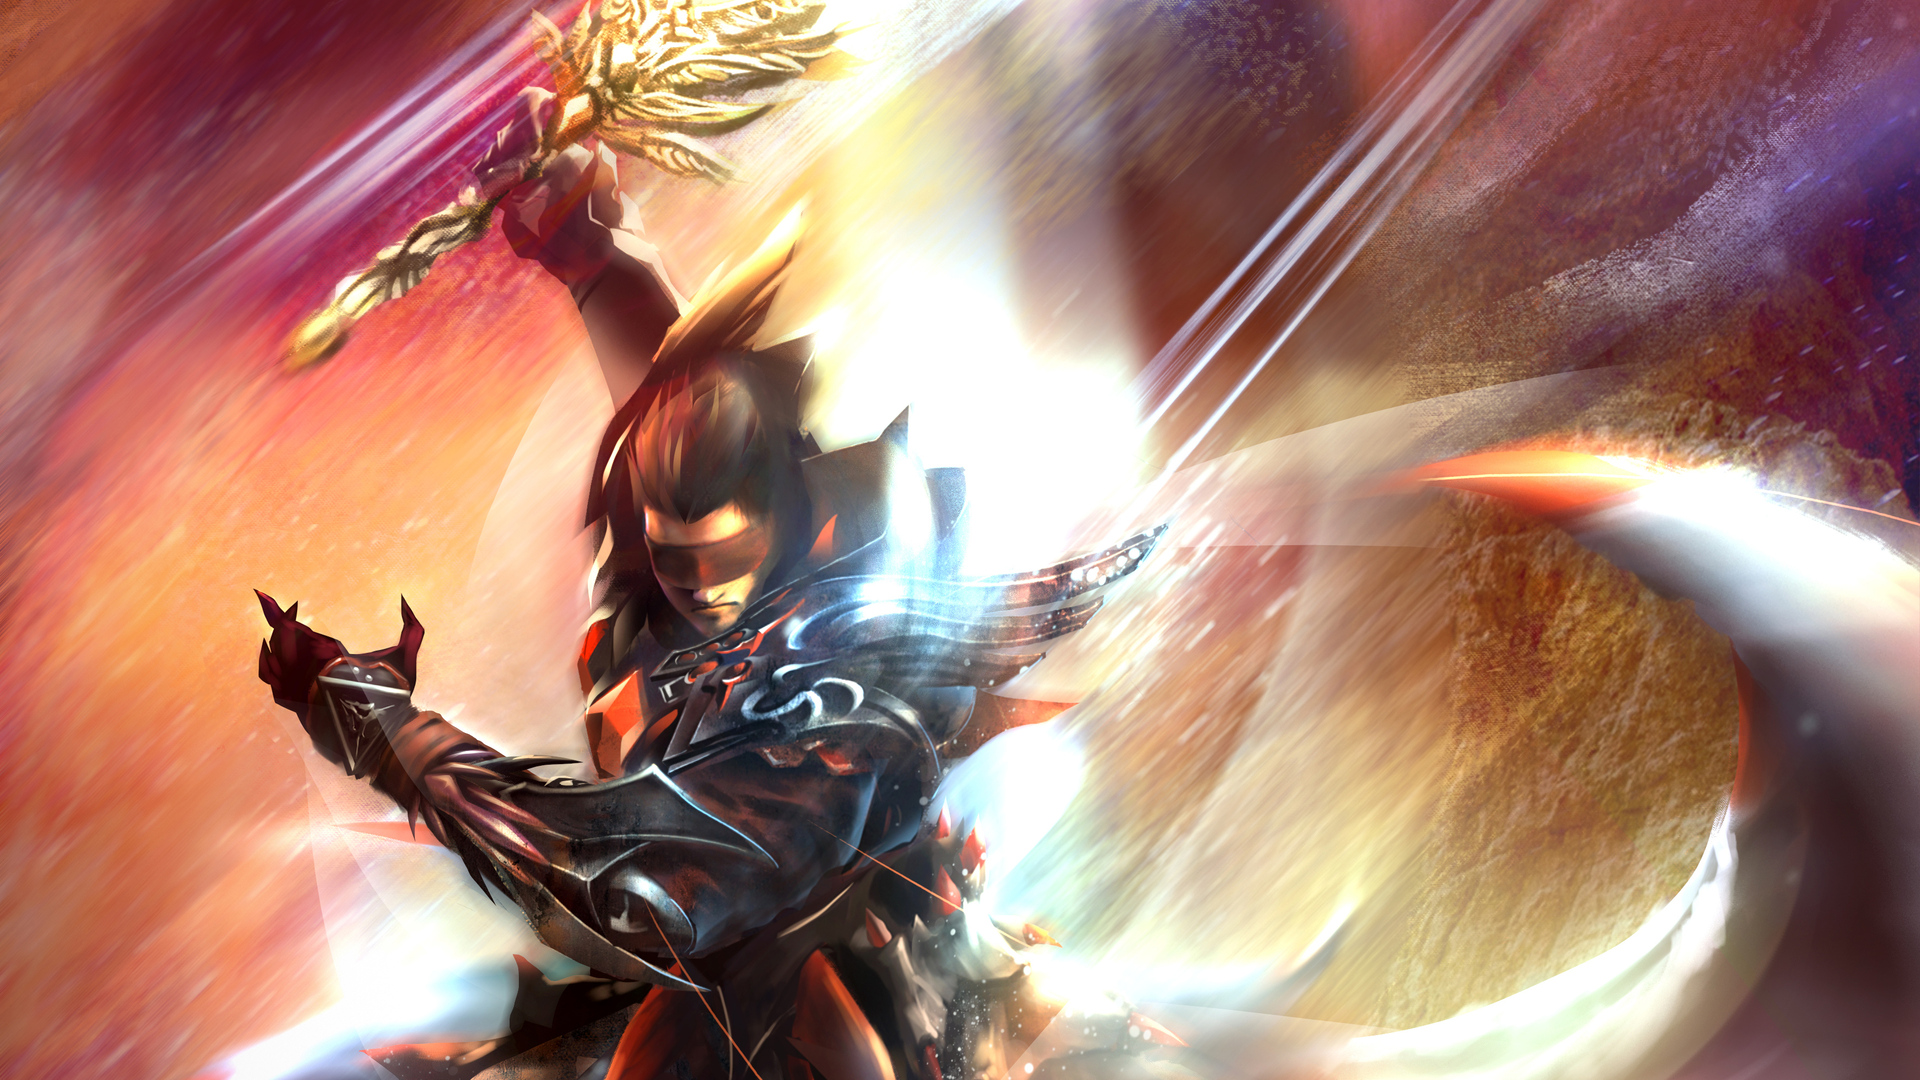 1920x1080 Guild Wars 2 4k Laptop Full Hd 1080p Hd 4k Wallpapers